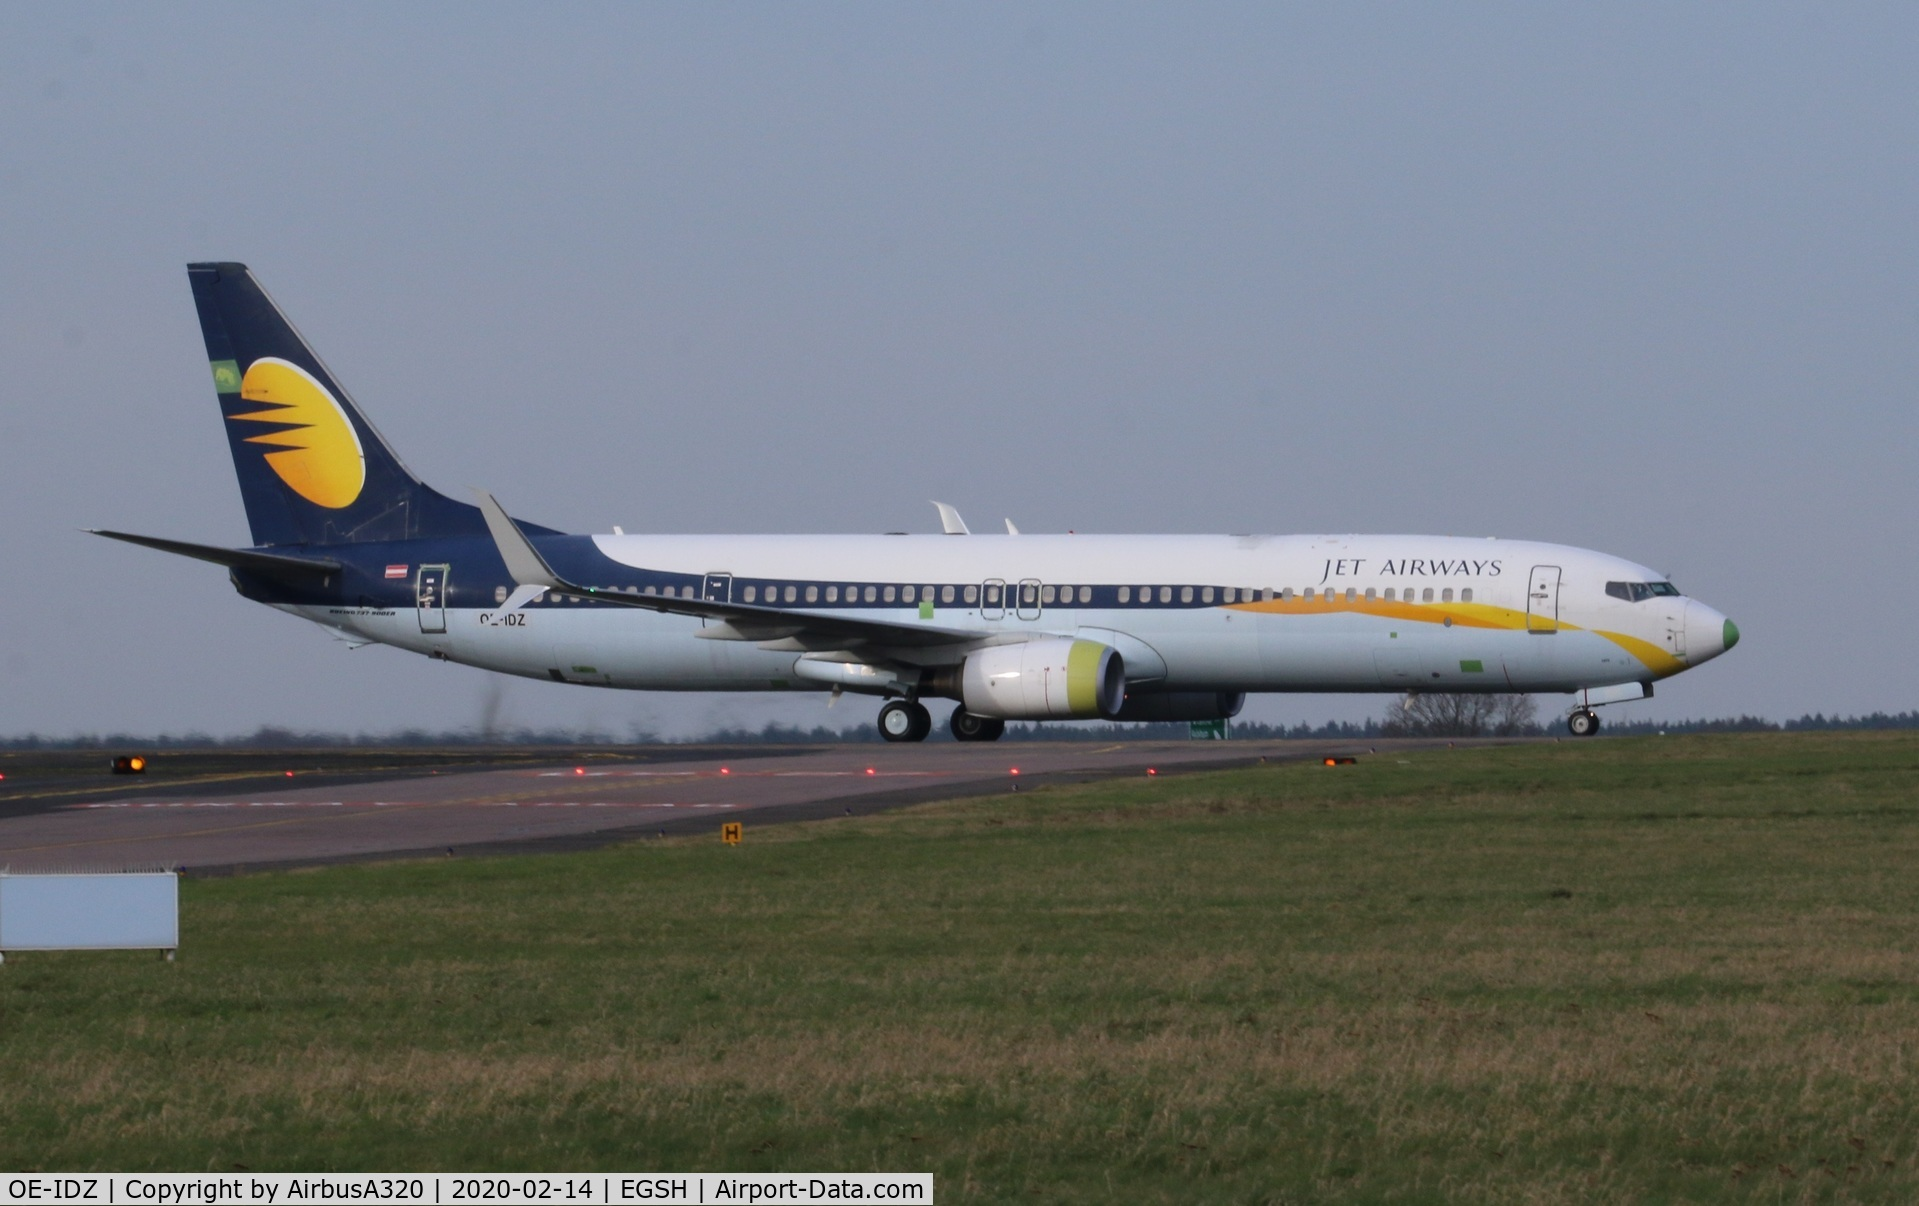 OE-IDZ, 2008 Boeing 737-96NER C/N 35227, Back tracking after arriving from Lasham